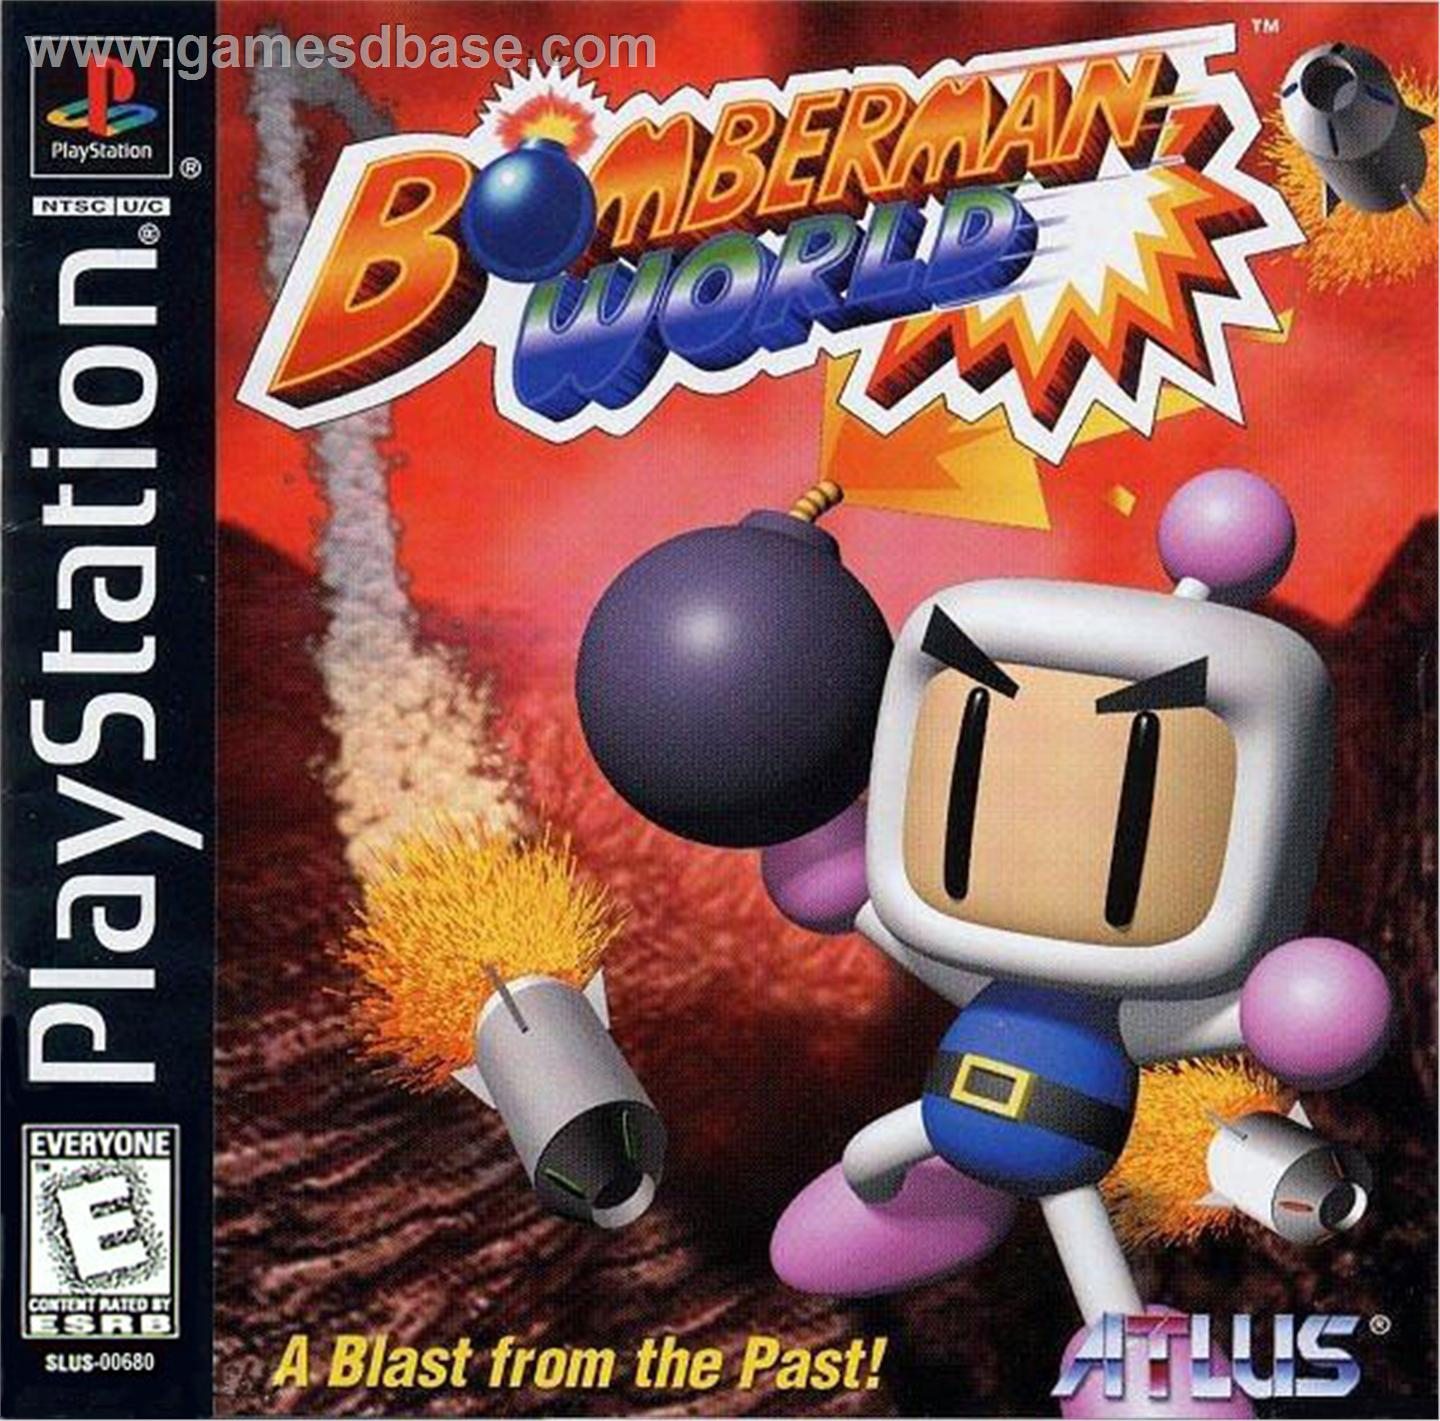 http://s.emuparadise.org/fup/up/36608-Bomberman_World-1.jpg